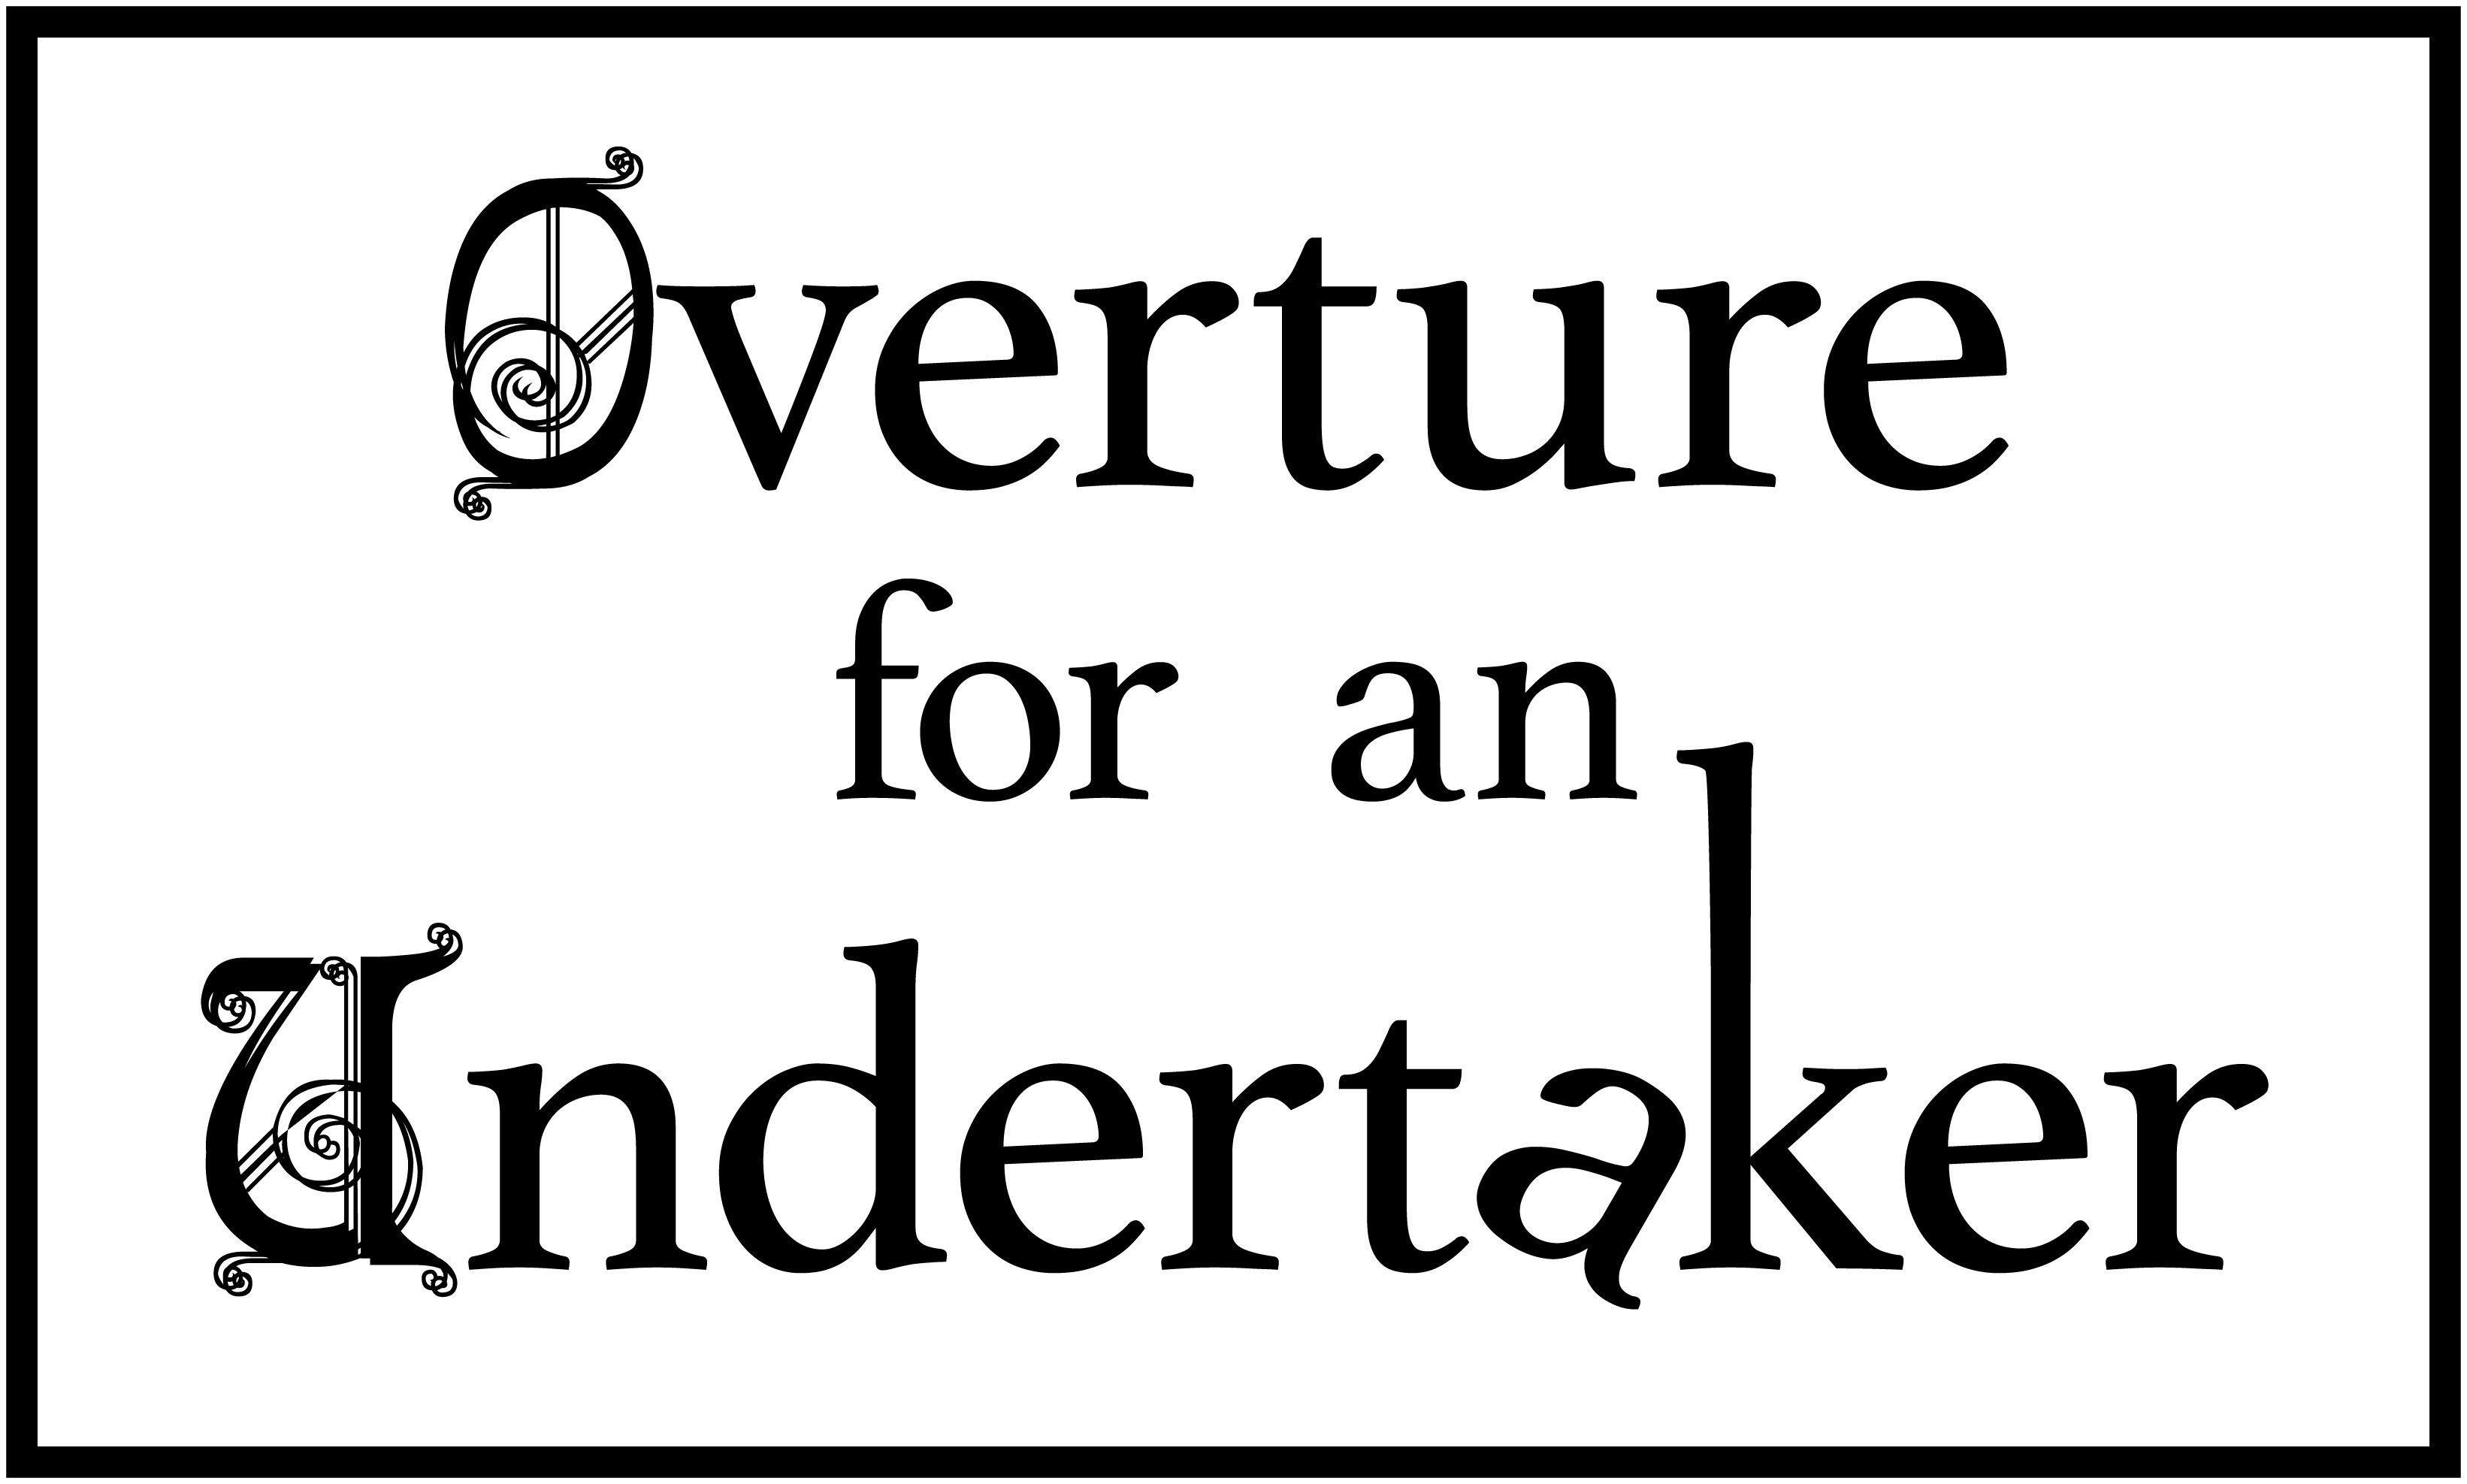 Overture for an Undertaker